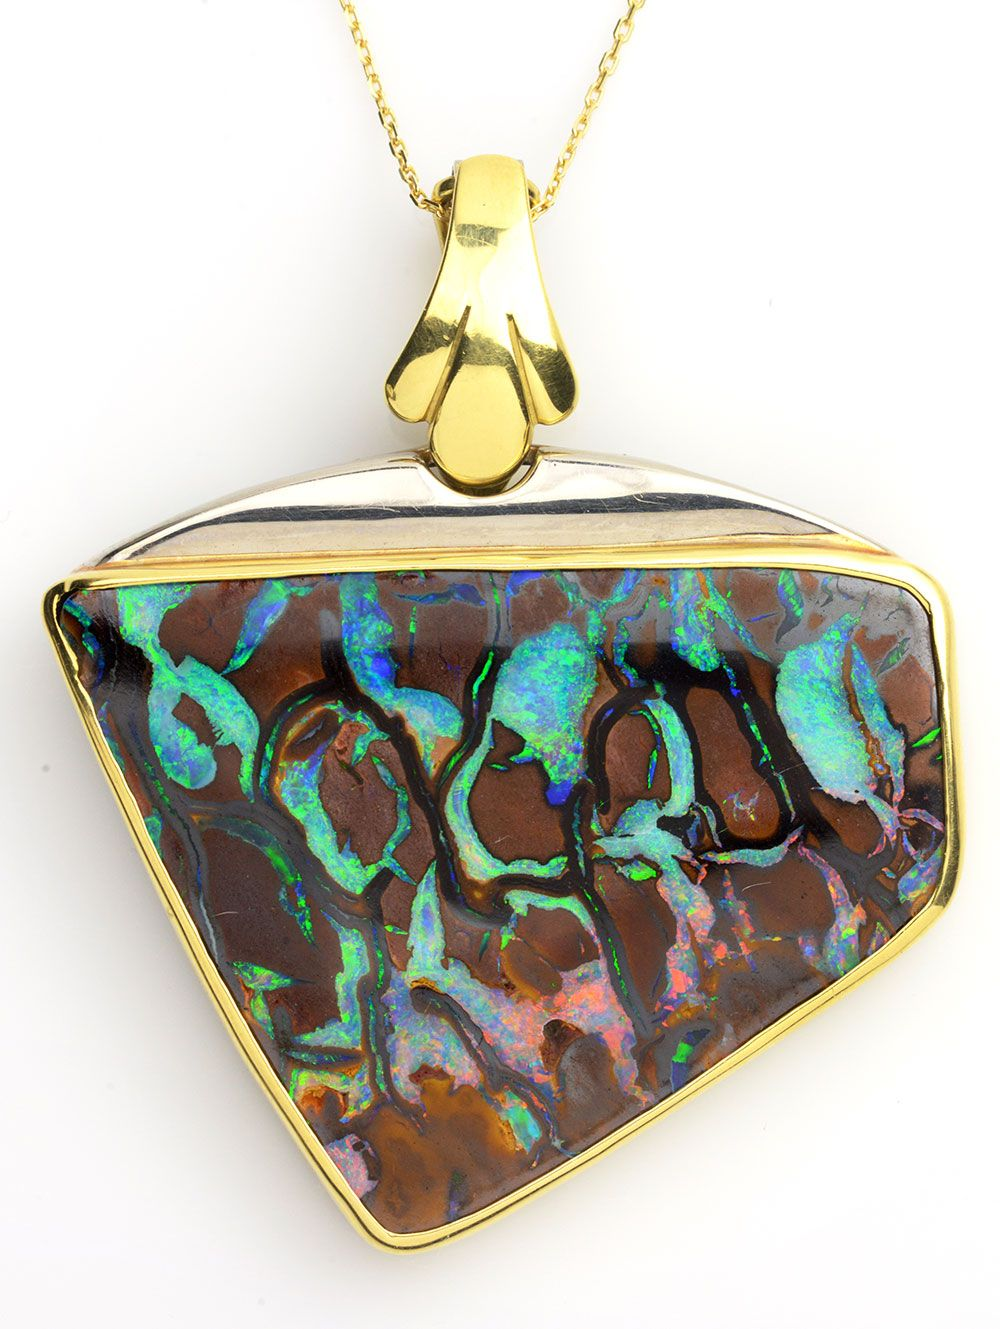 Colorful Green, Blue, Brown, and Pink Opal Necklace. Item #499-78417 Estate 60.00 ct Boulder Opal Free Shape 18K Yellow Gold Pendant Approx.Wt. Length 17 - Gem Shopping Network Jewelry